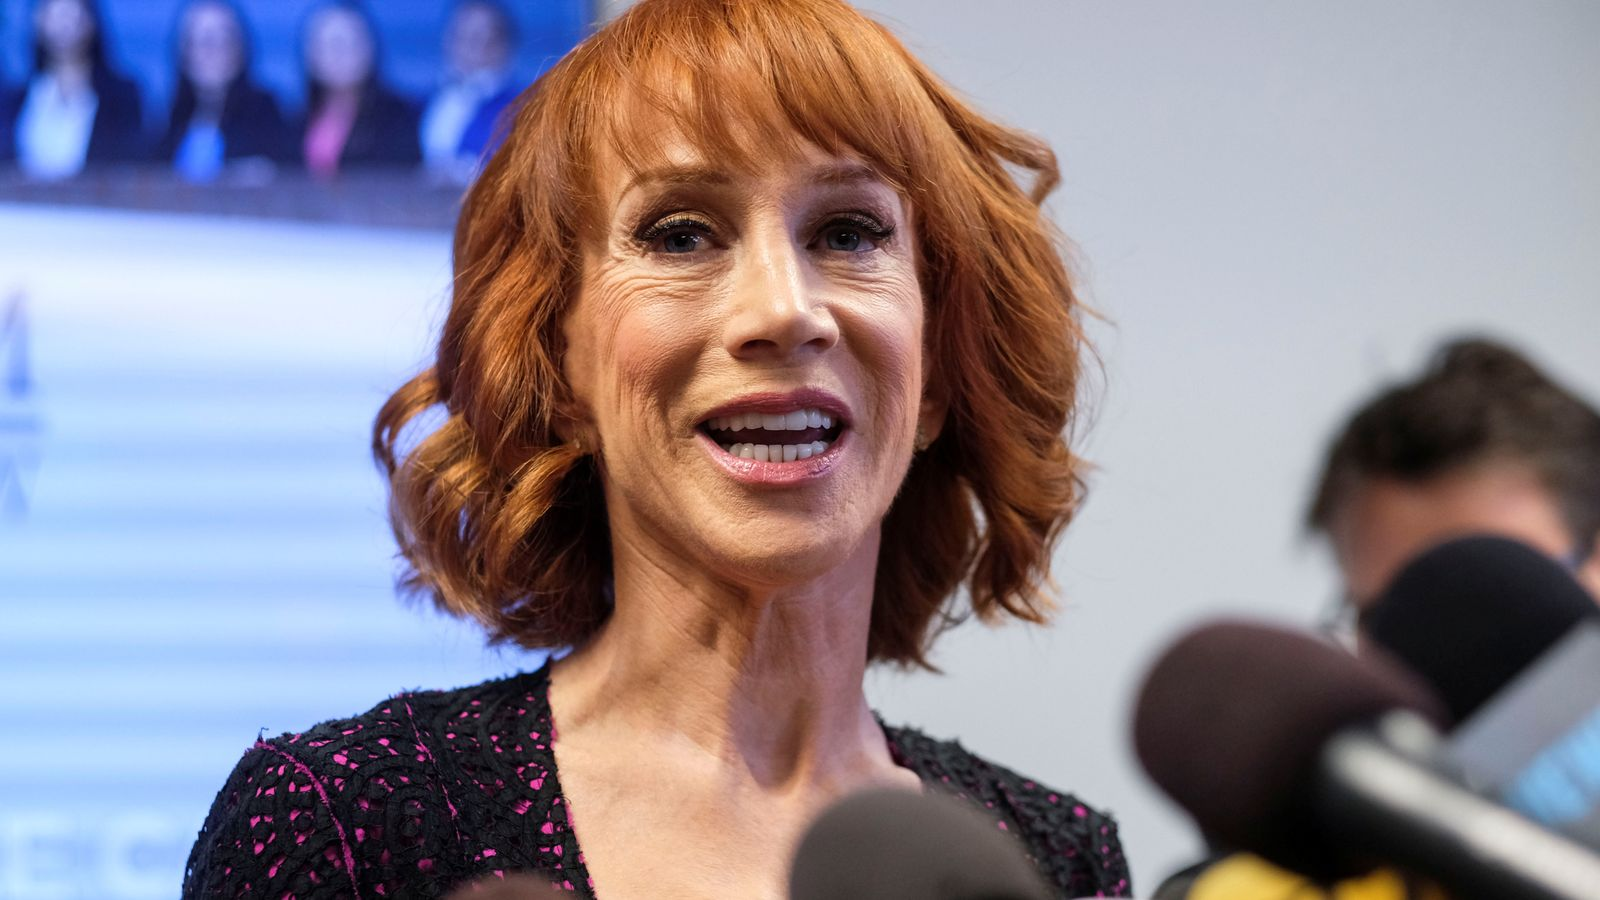 Kathy Griffin: US comedian reveals lung cancer diagnosis